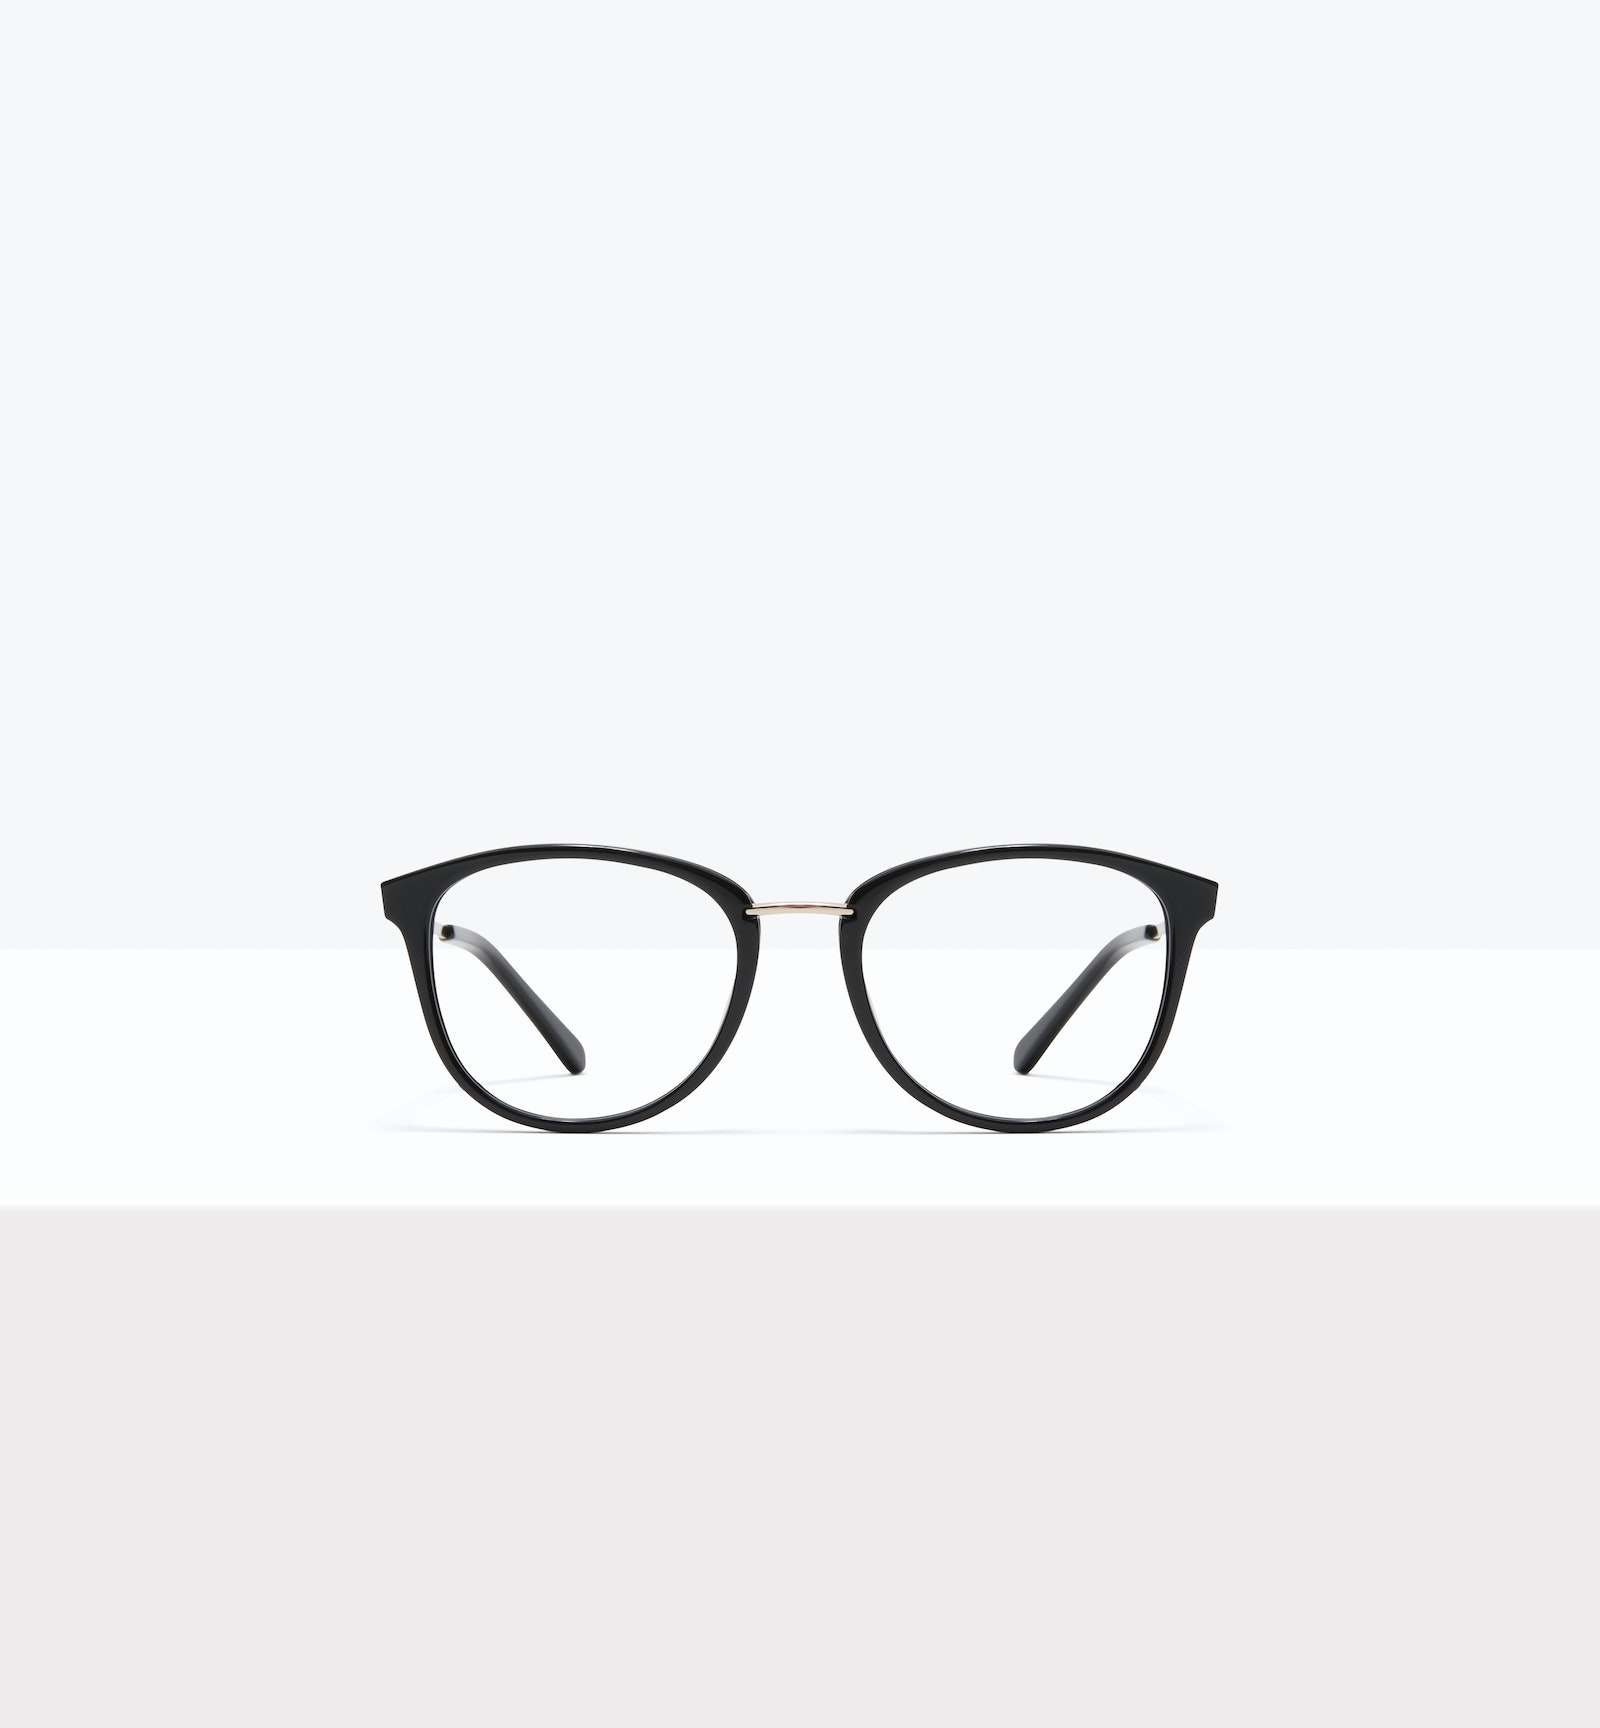 Affordable Fashion Glasses Square Round Eyeglasses Women Bella M Black